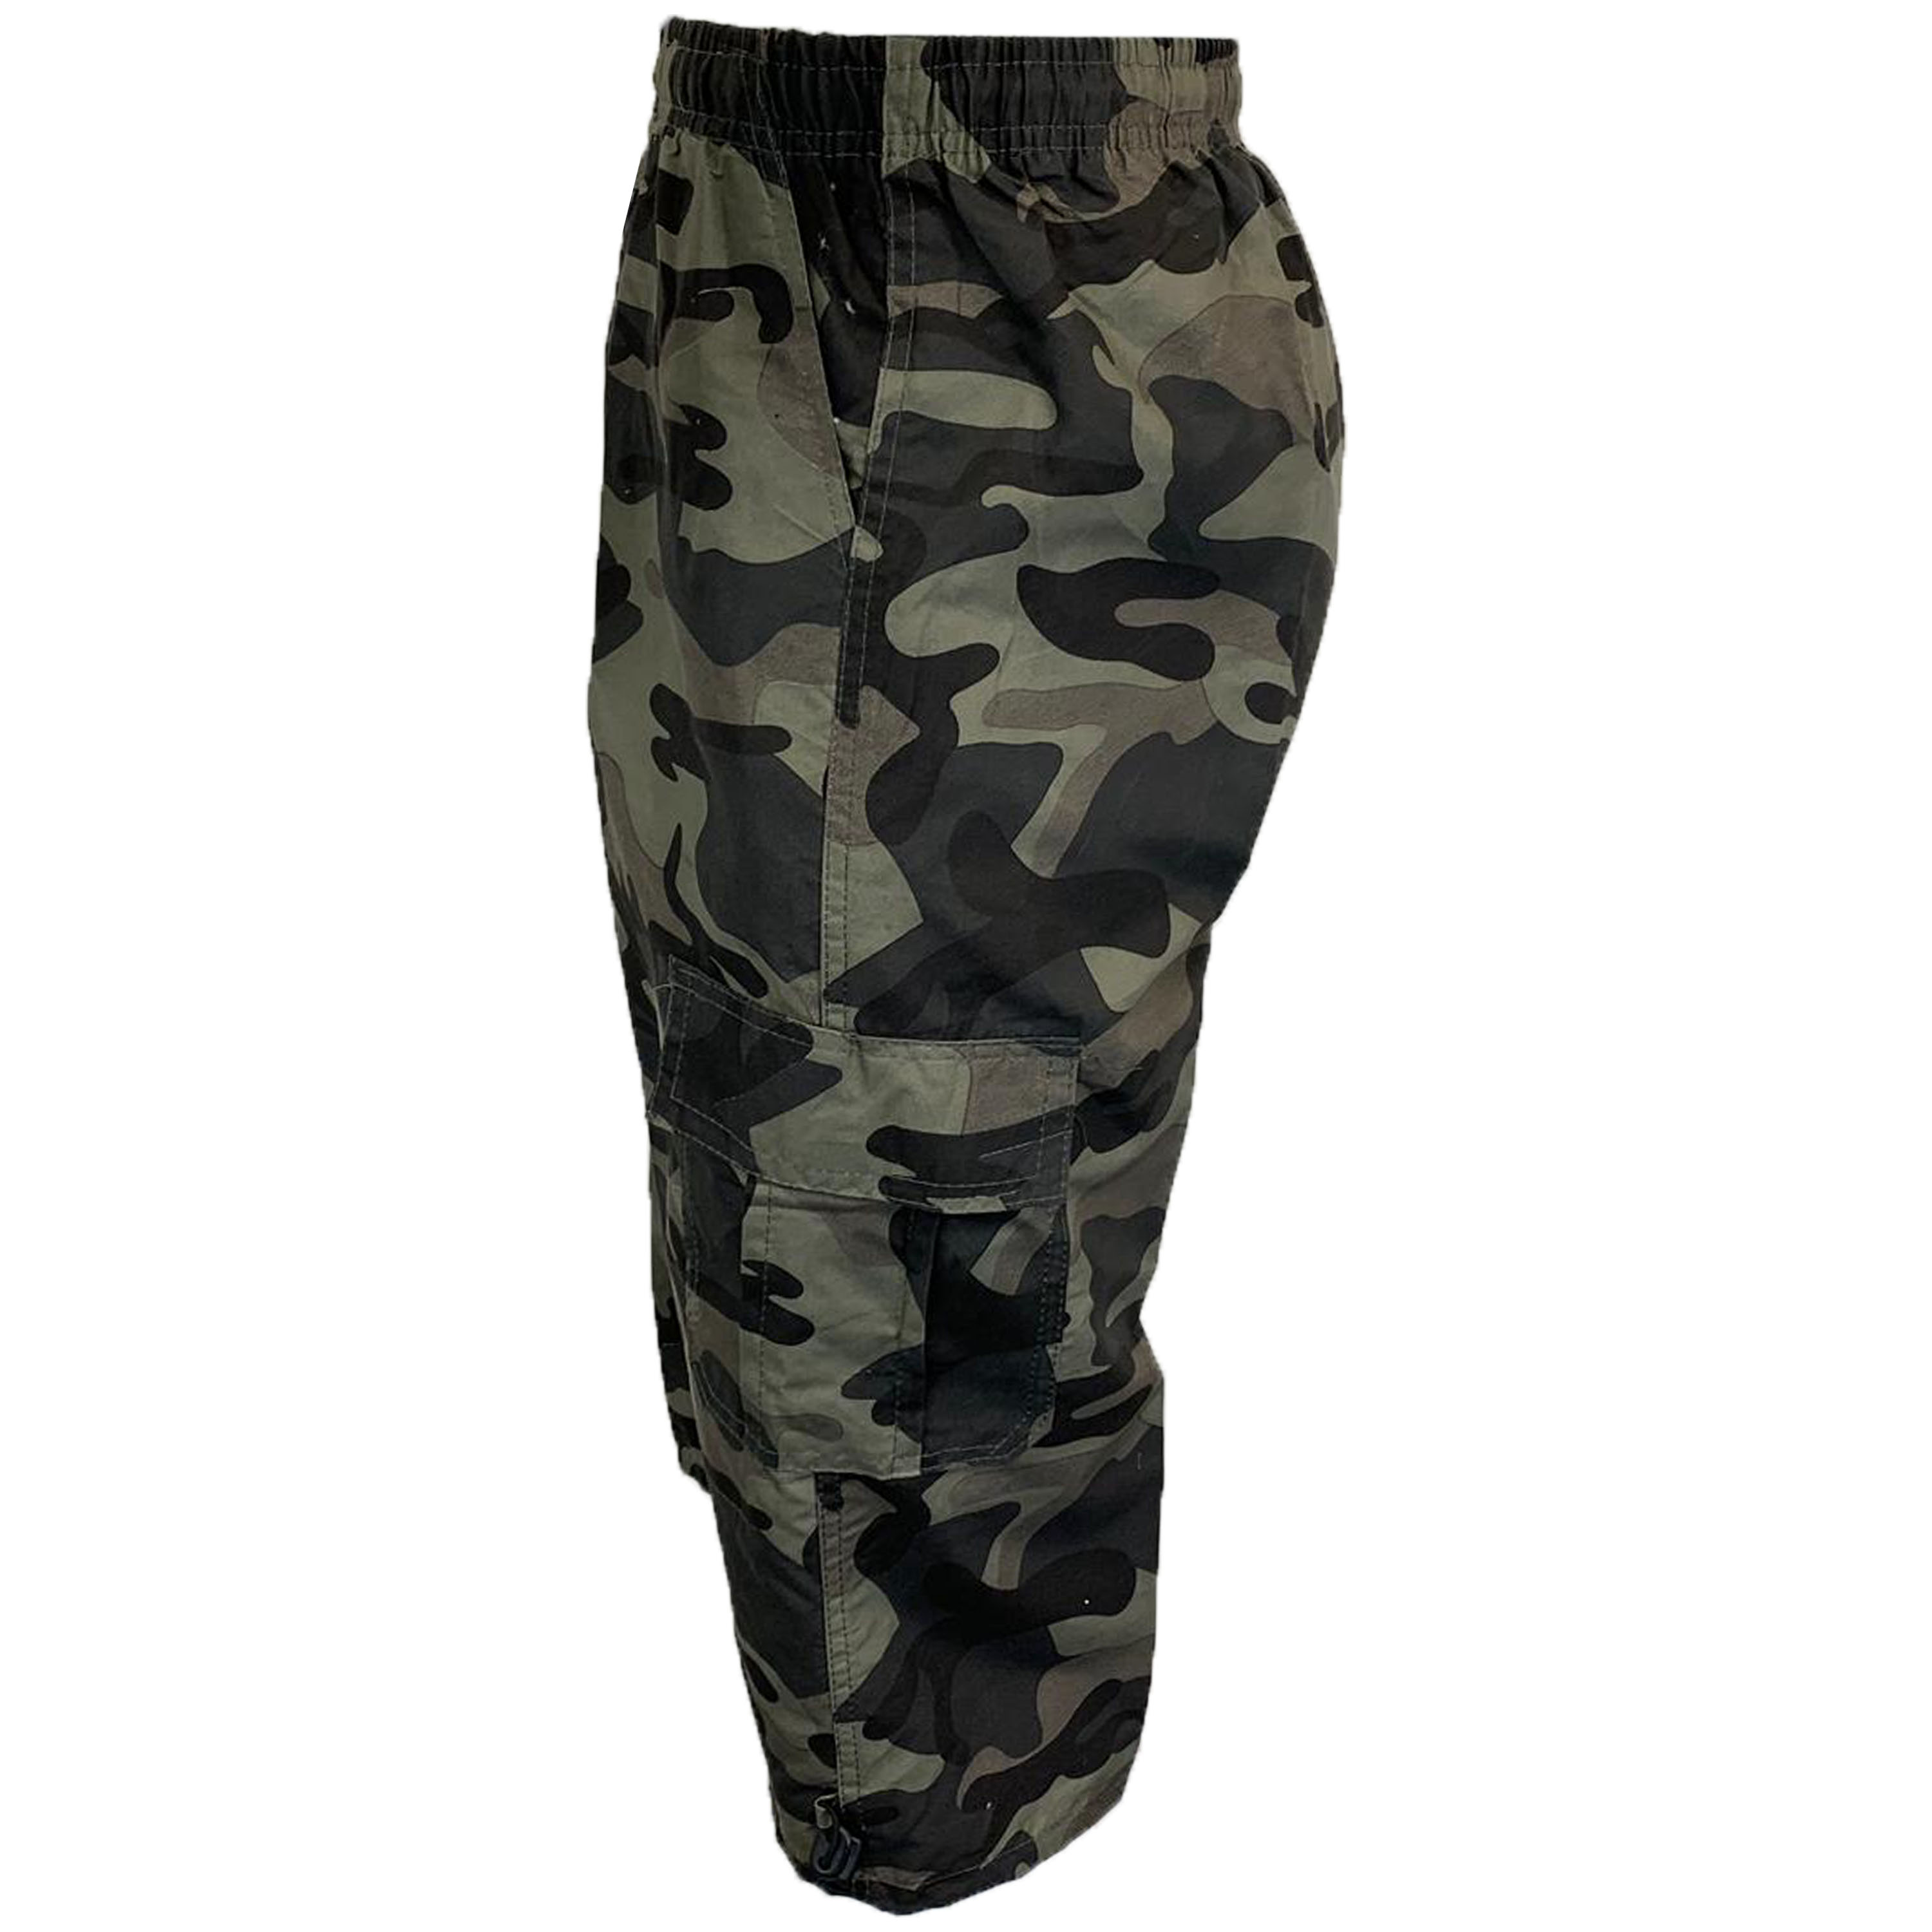 Mens-Camouflage-Combat-Cargo-Shorts-3-4-Length-Army-Military-Sports-Summer-New thumbnail 9